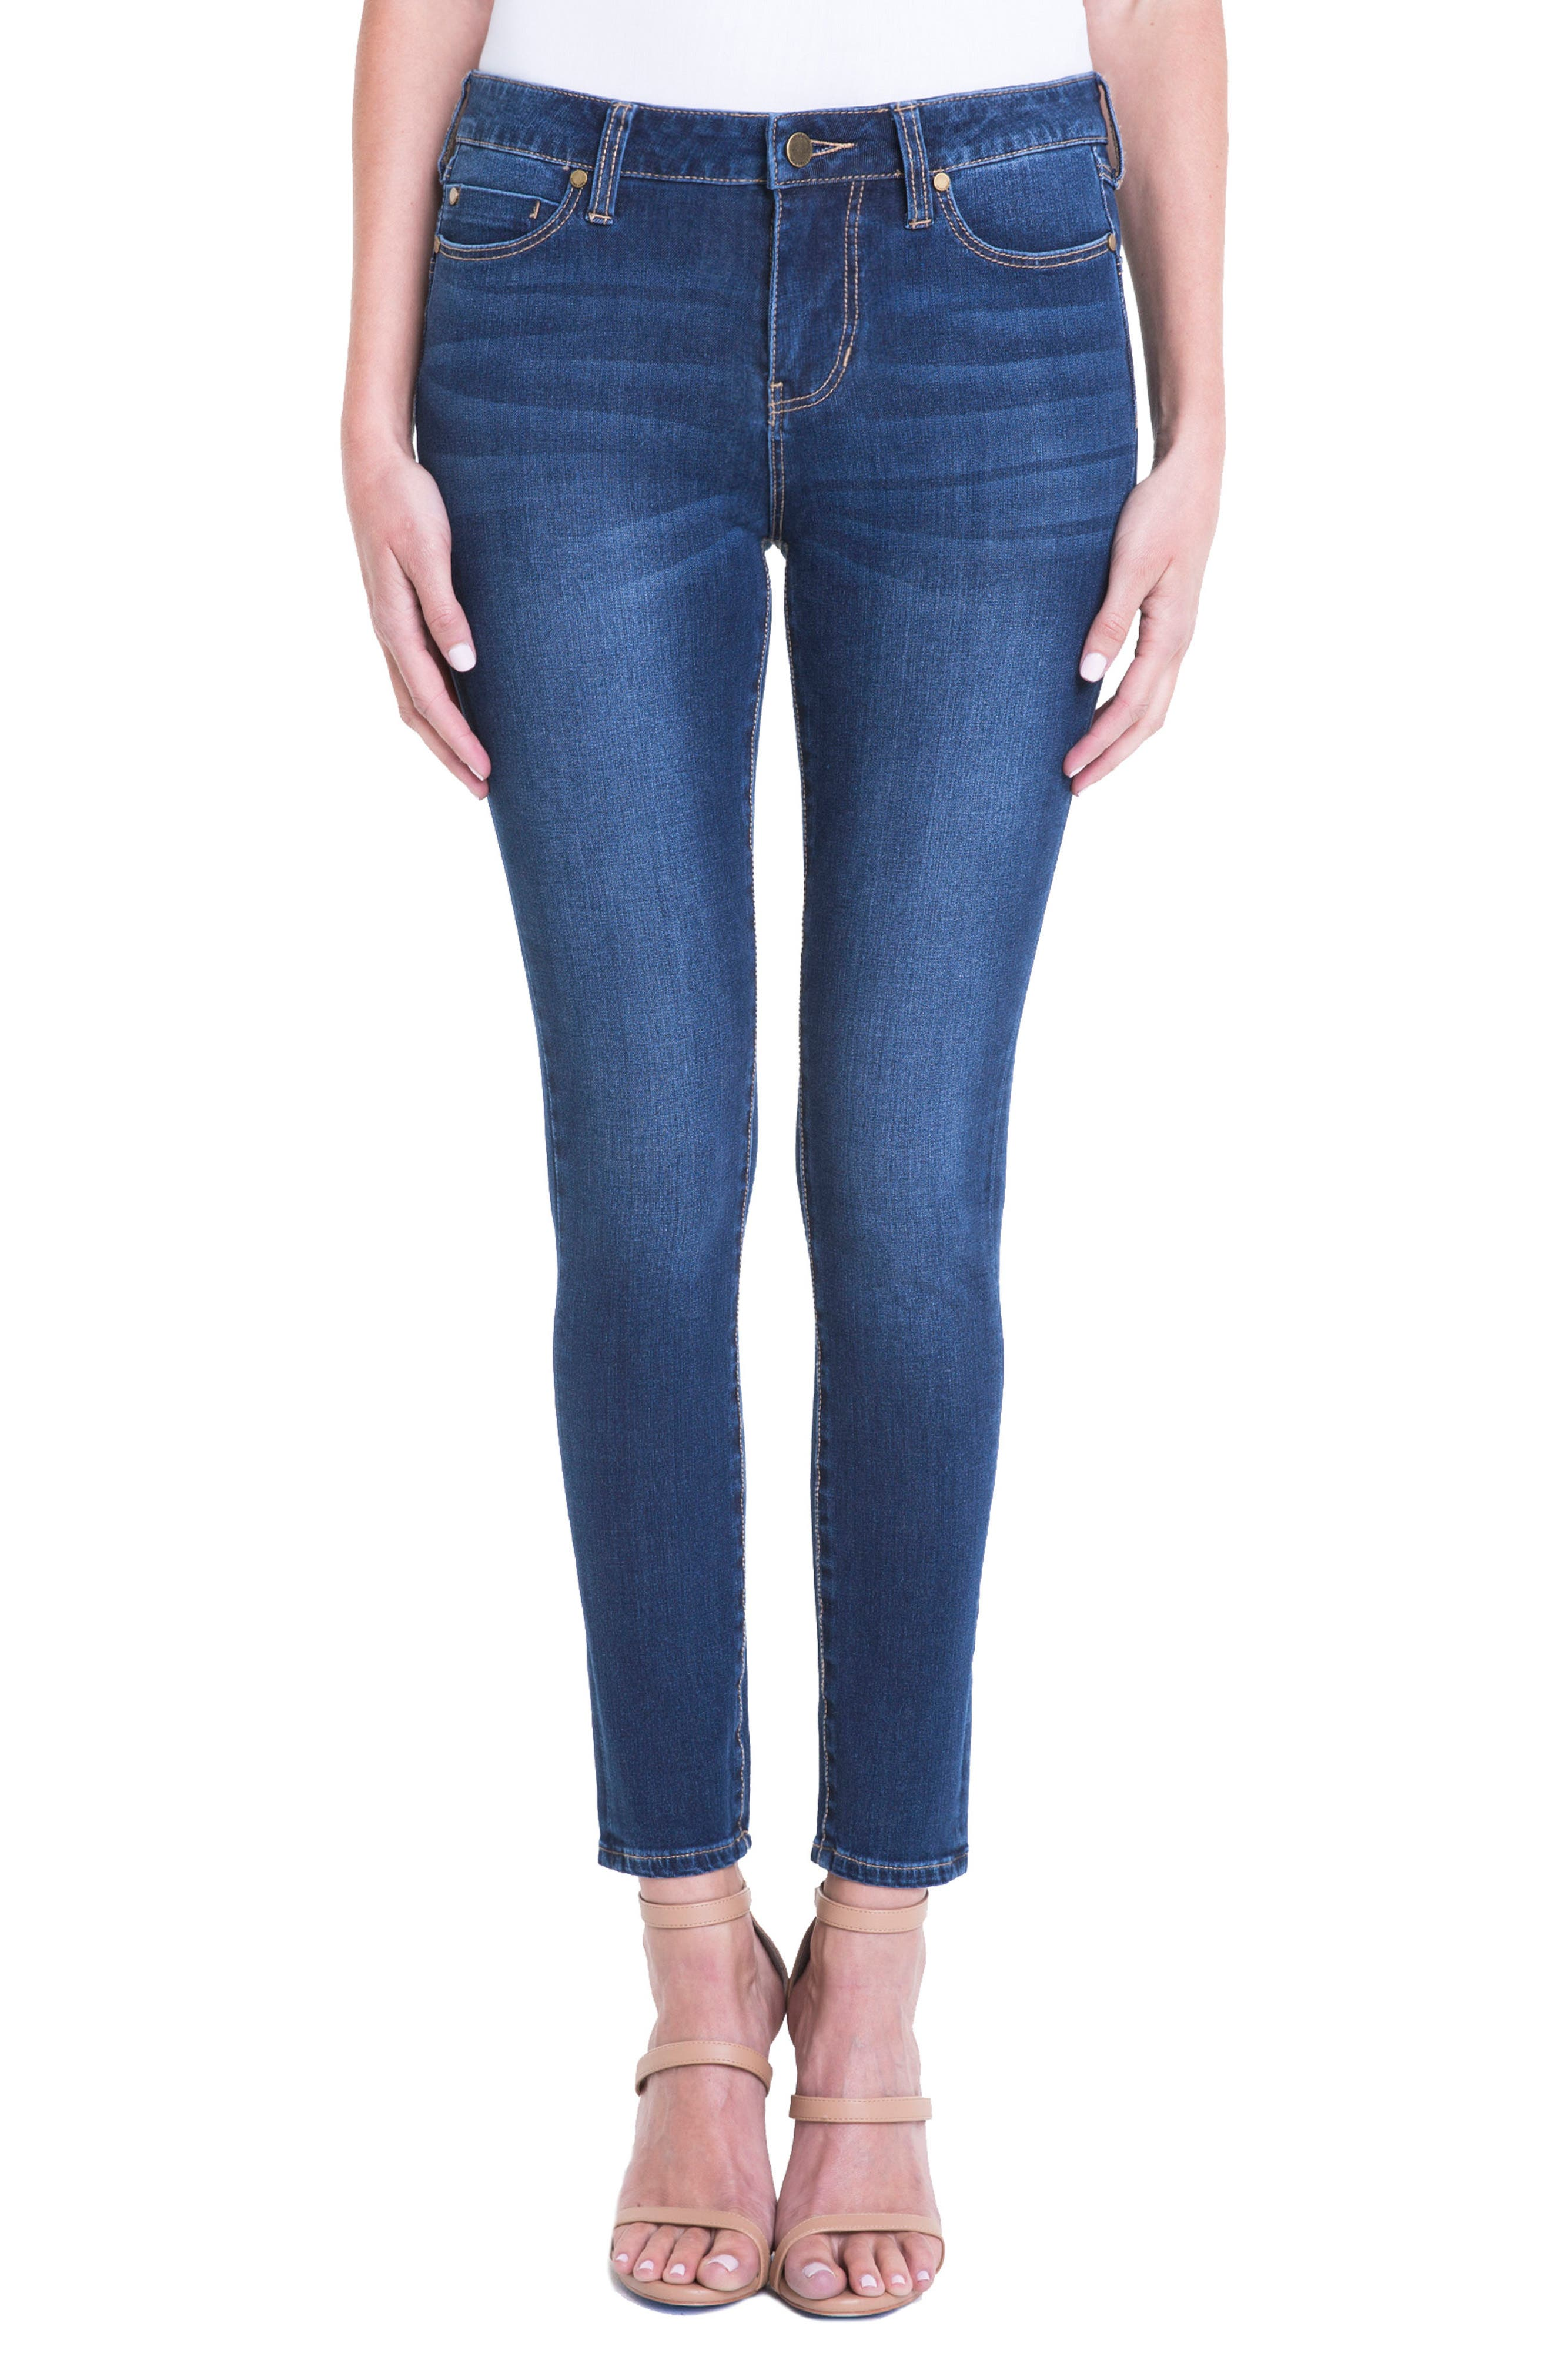 Jeans Company Piper Hugger Lift Sculpt Ankle Skinny Jeans,                         Main,                         color, Lynx Wash